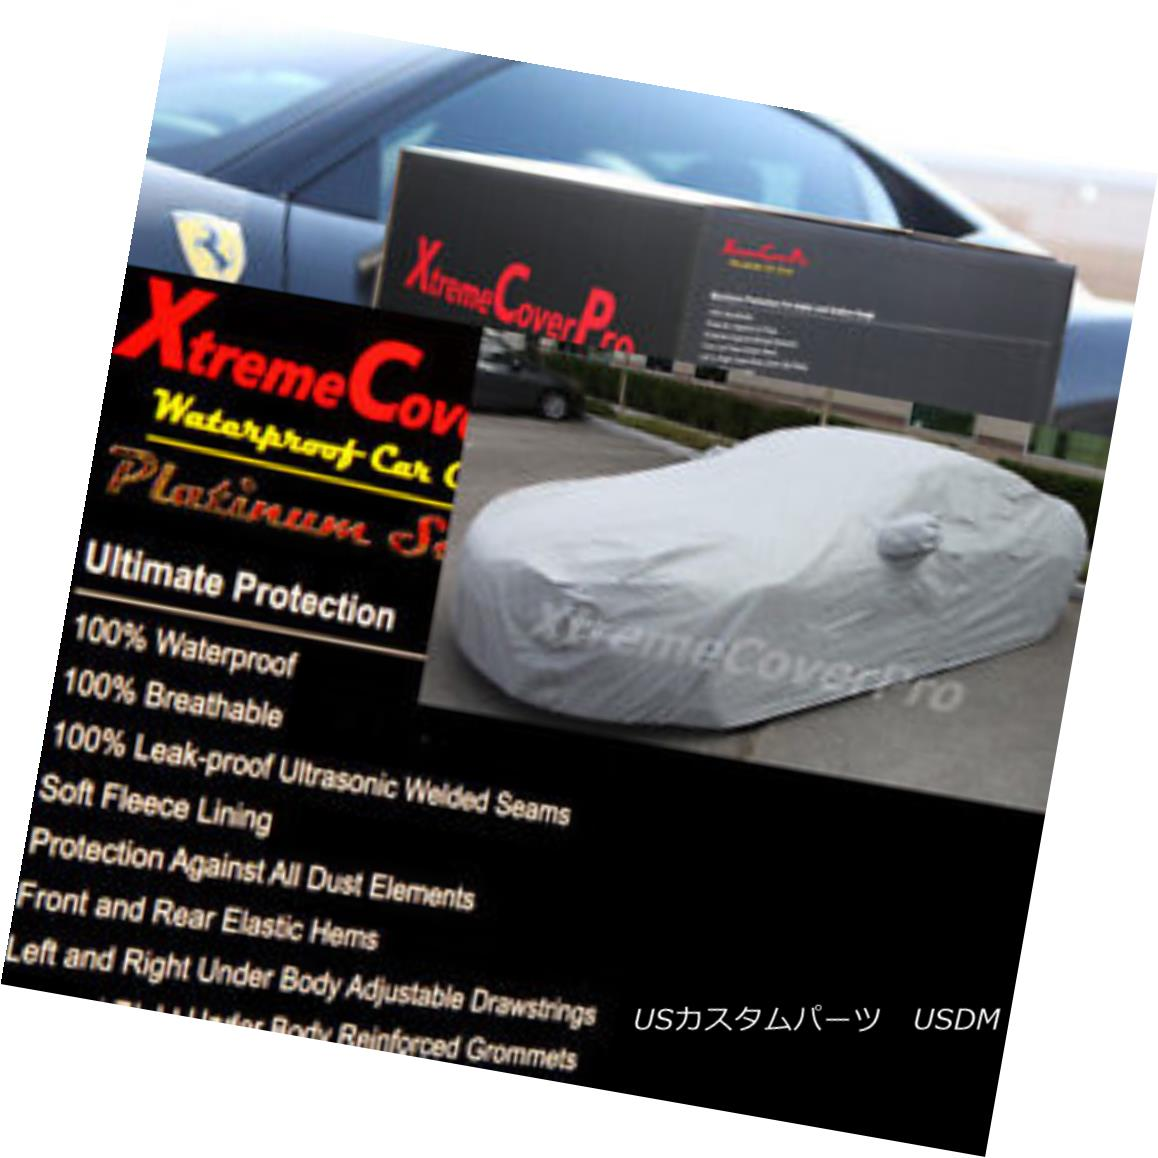 カーカバー 1990 1991 Pontiac Grand Am Coupe/Sedan Waterproof Car Cover w/MirrorPocket 1990 1991 Pontiac Grand Am Coupe / MirrorPocketを搭載したセダン防水カーカバー